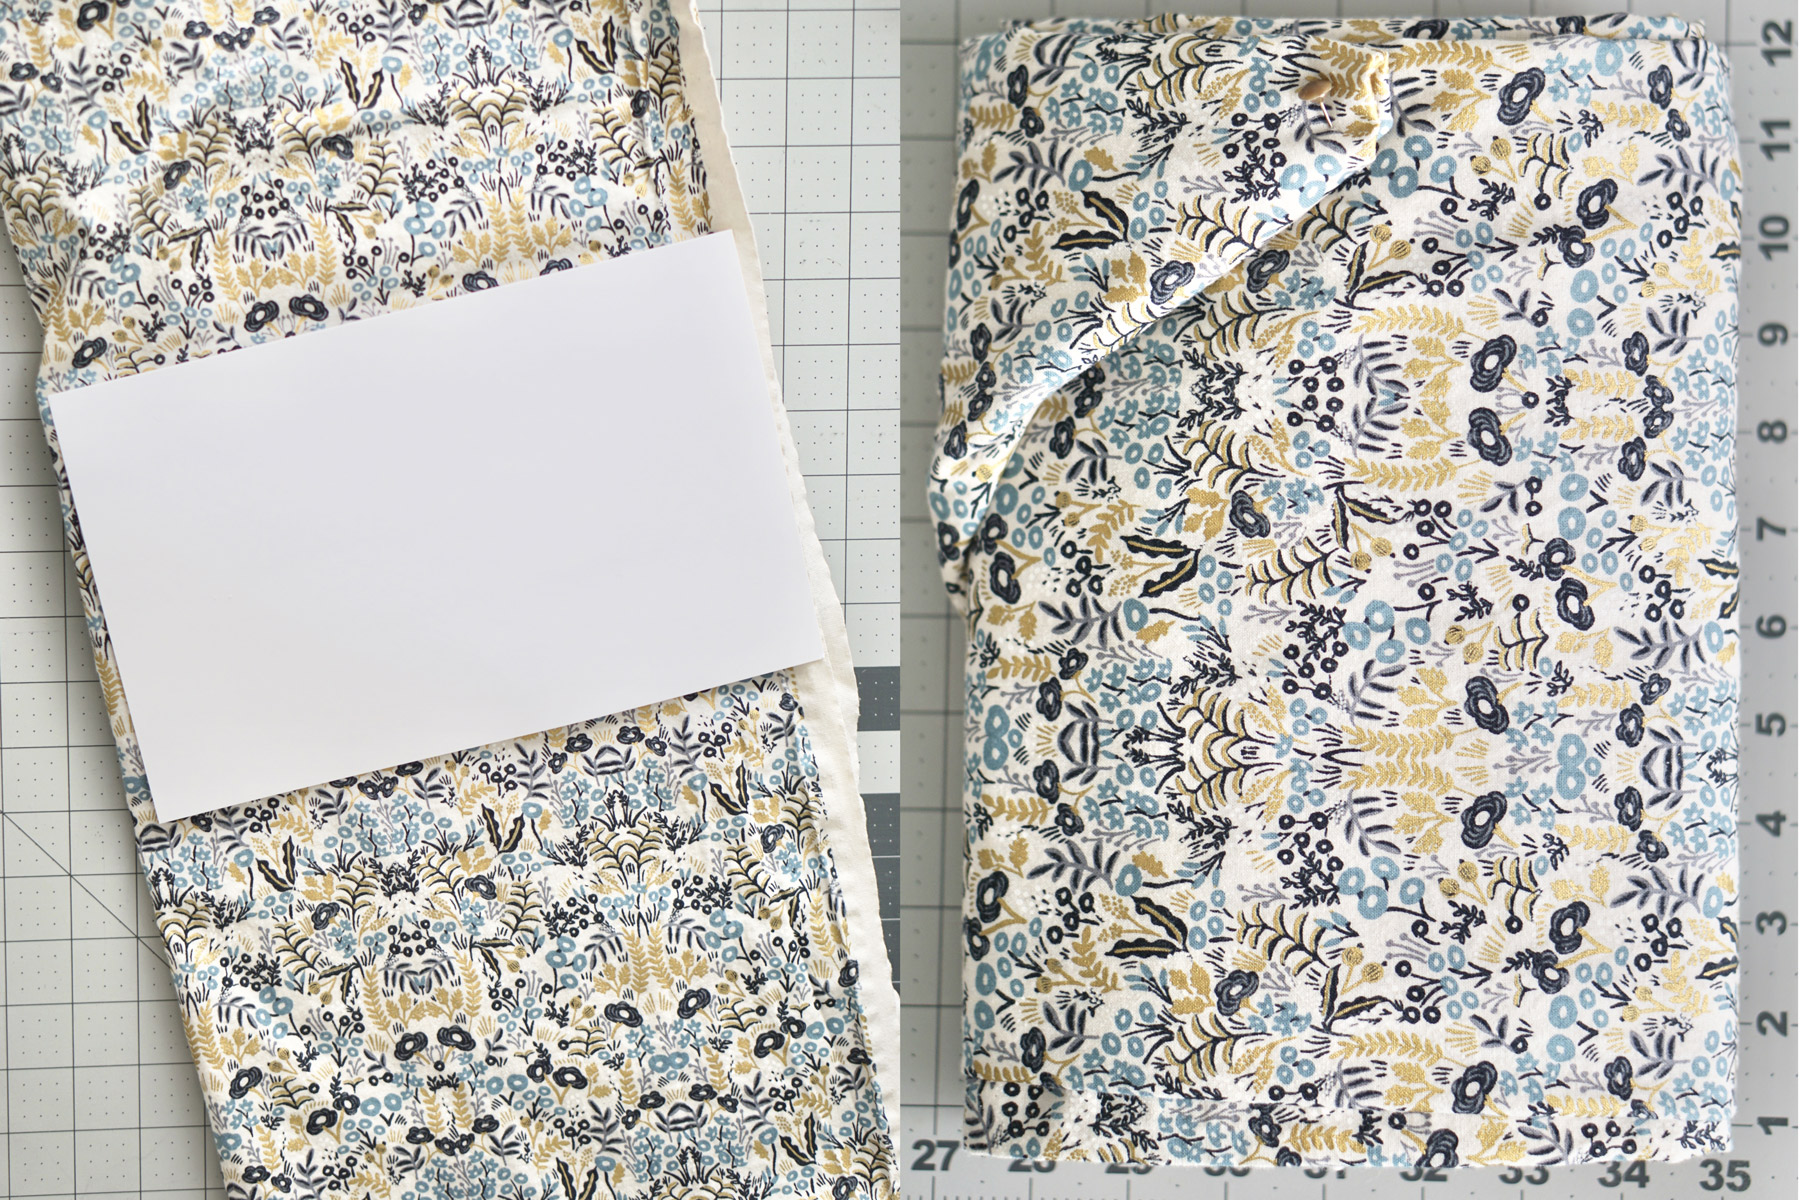 Megan Nielsen Patterns - Nastasia's Tips On How To Fold Fabric For Storage